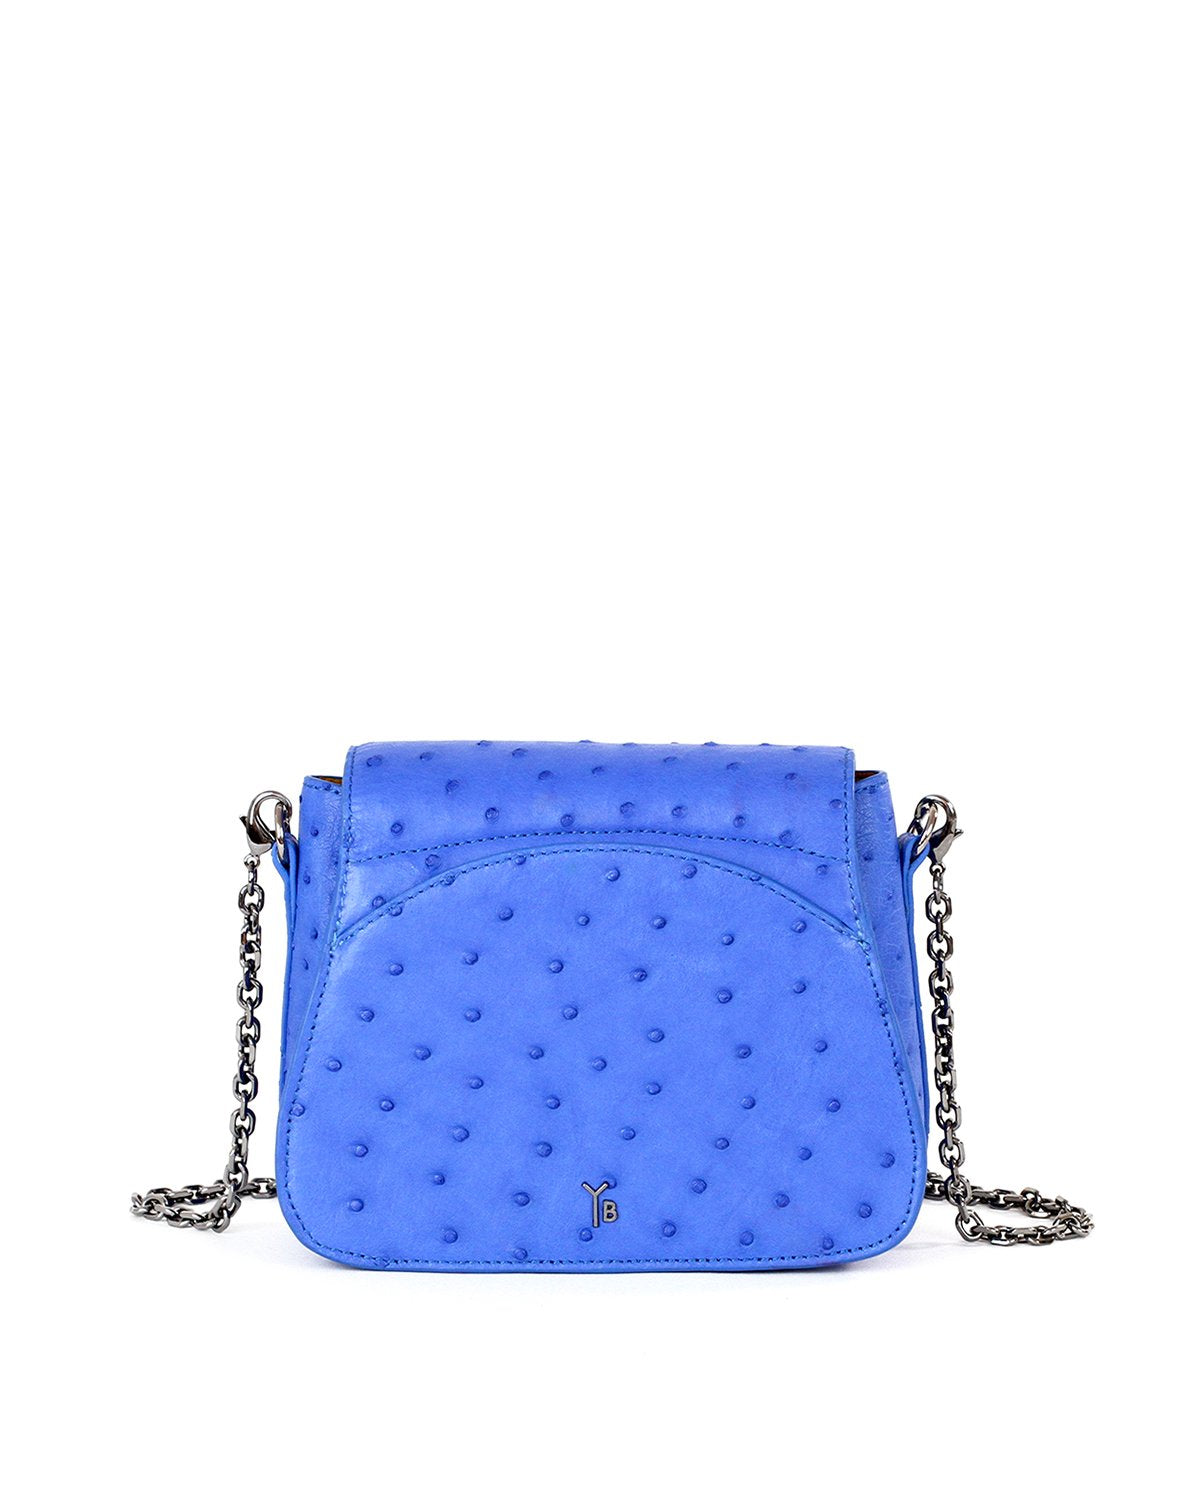 Royal Blue Genuine Ostrich Yara Bashoor Crossbody Back Image Back outside pocket curved with Shoulder Pad and Chain Shoulder Strap